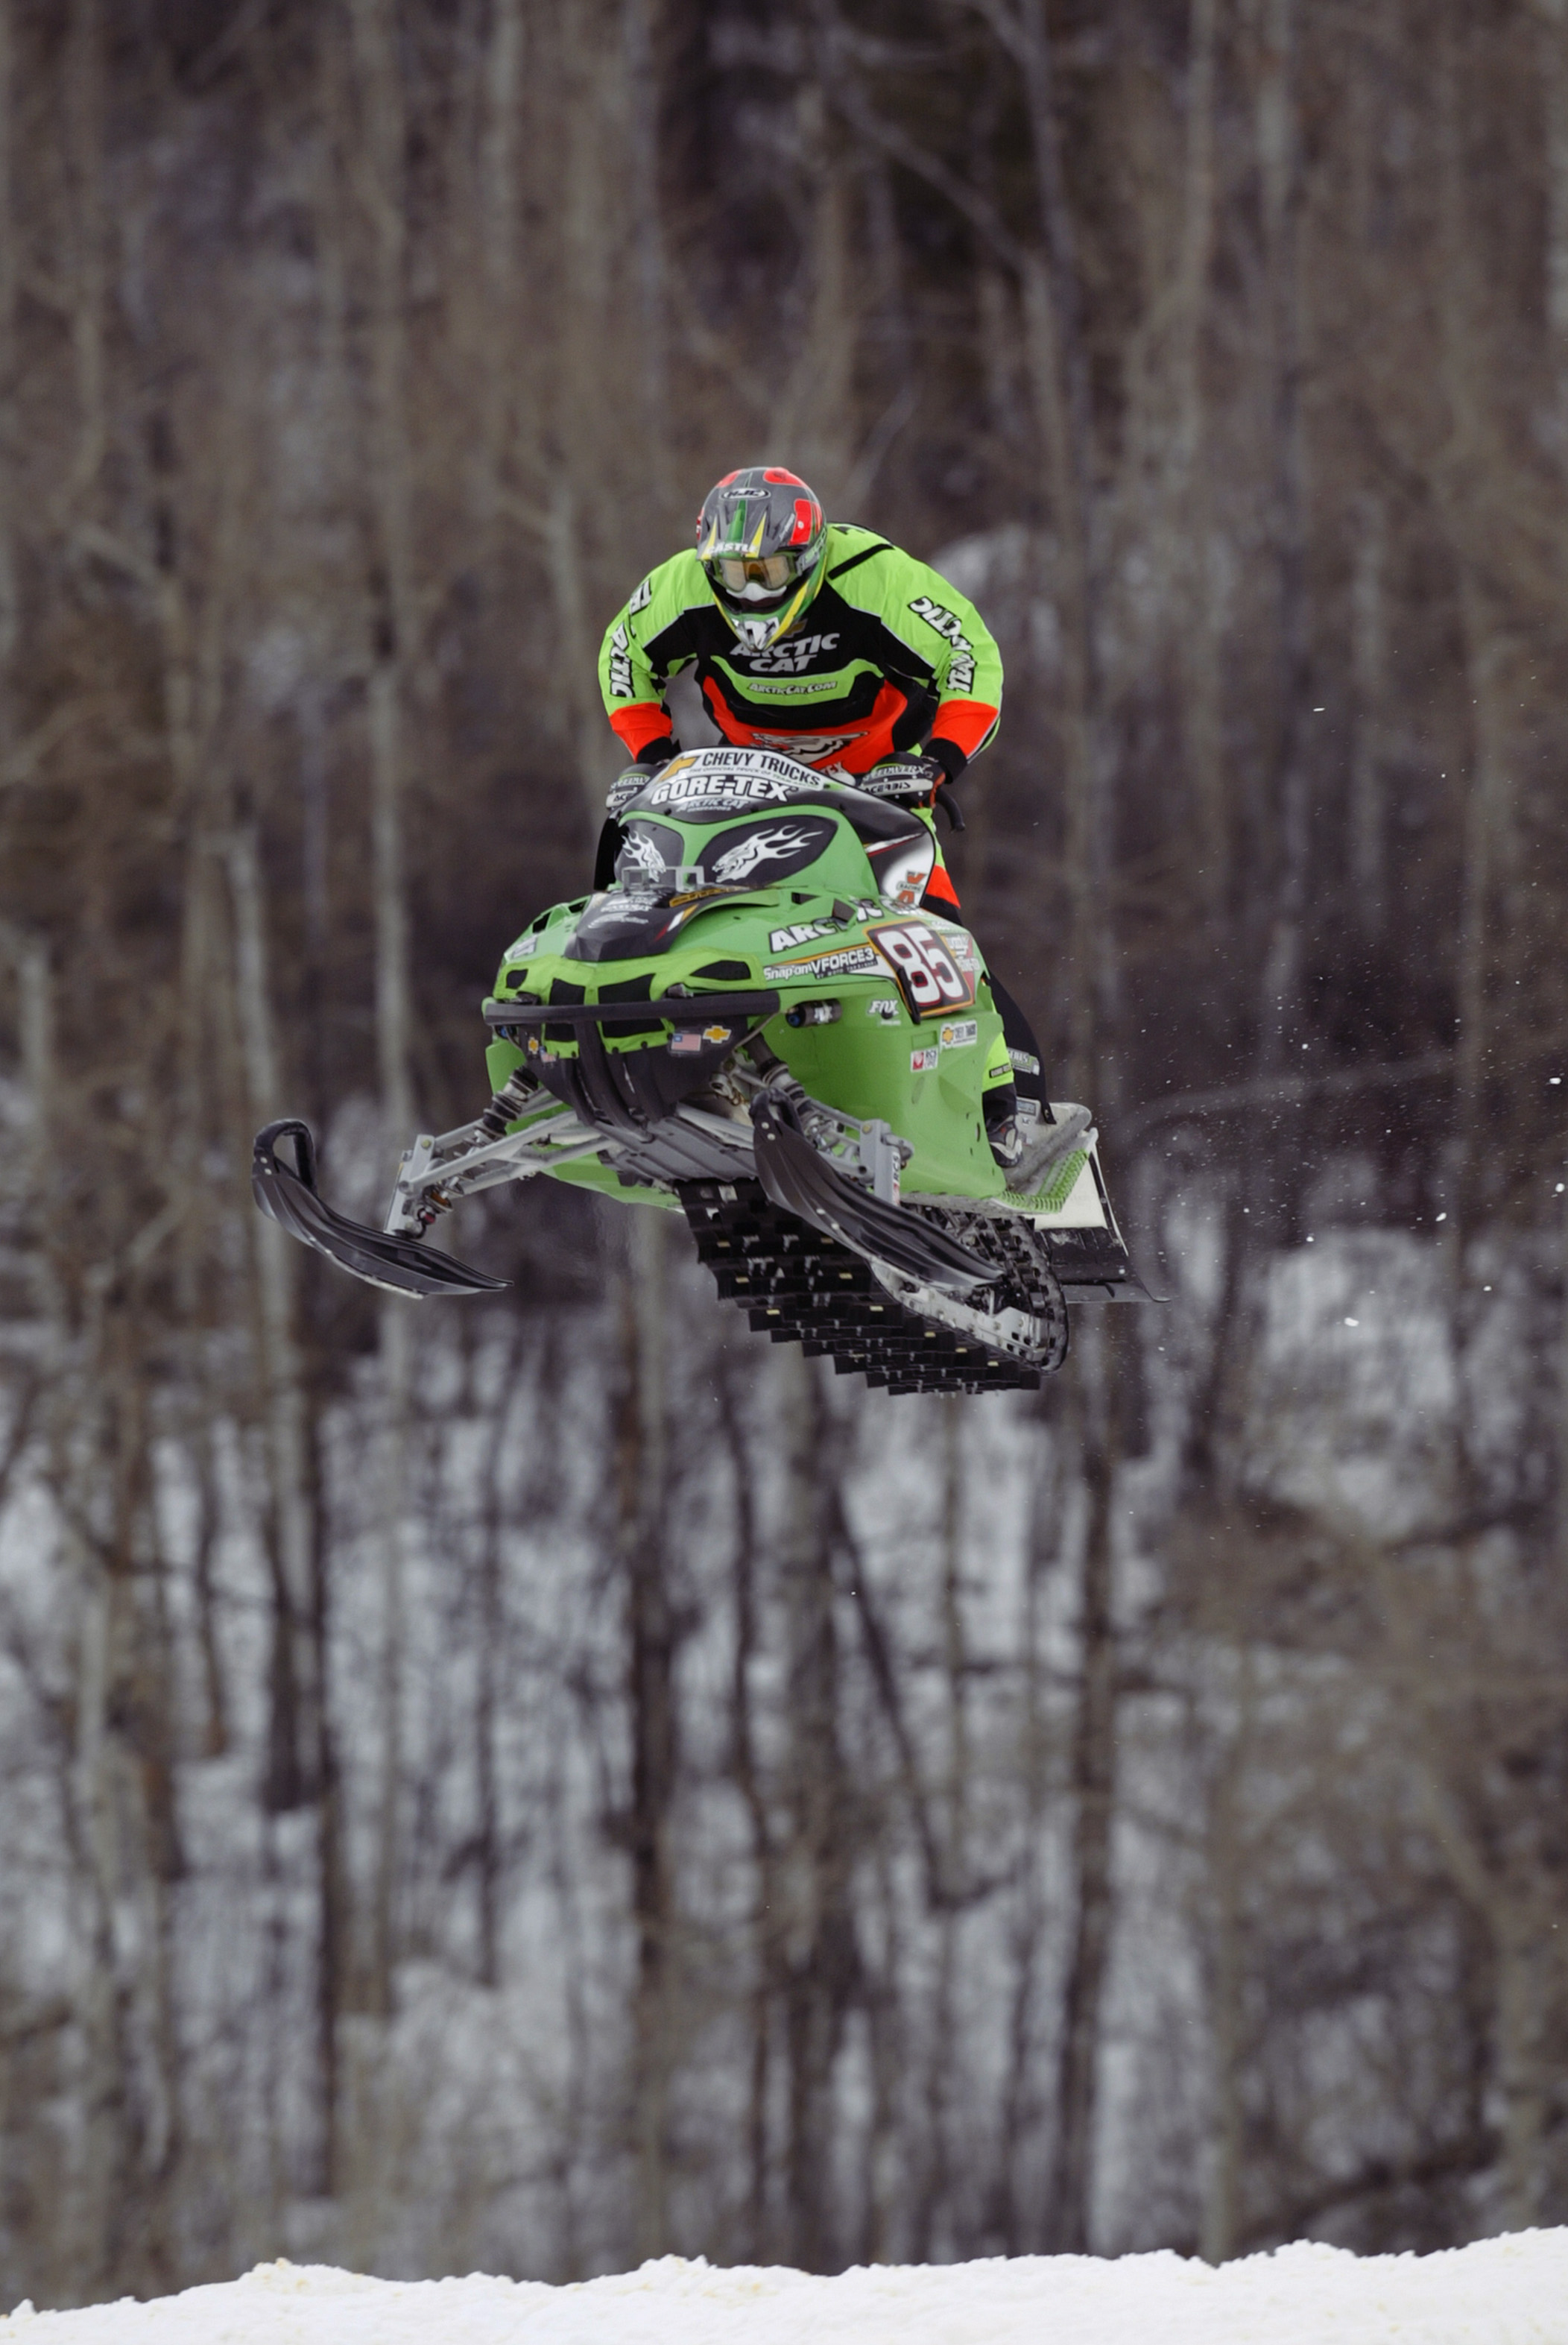 ASPEN, CO - JANUARY 30:  Tucker Hibbert of the USA flies through the air during the Snowmobile SnoCross competition of the Winter X Games VII at Buttermilk Mountain on January 30, 2003, in Aspen, Colorado. (Photo by Brian Bahr/Getty Images)